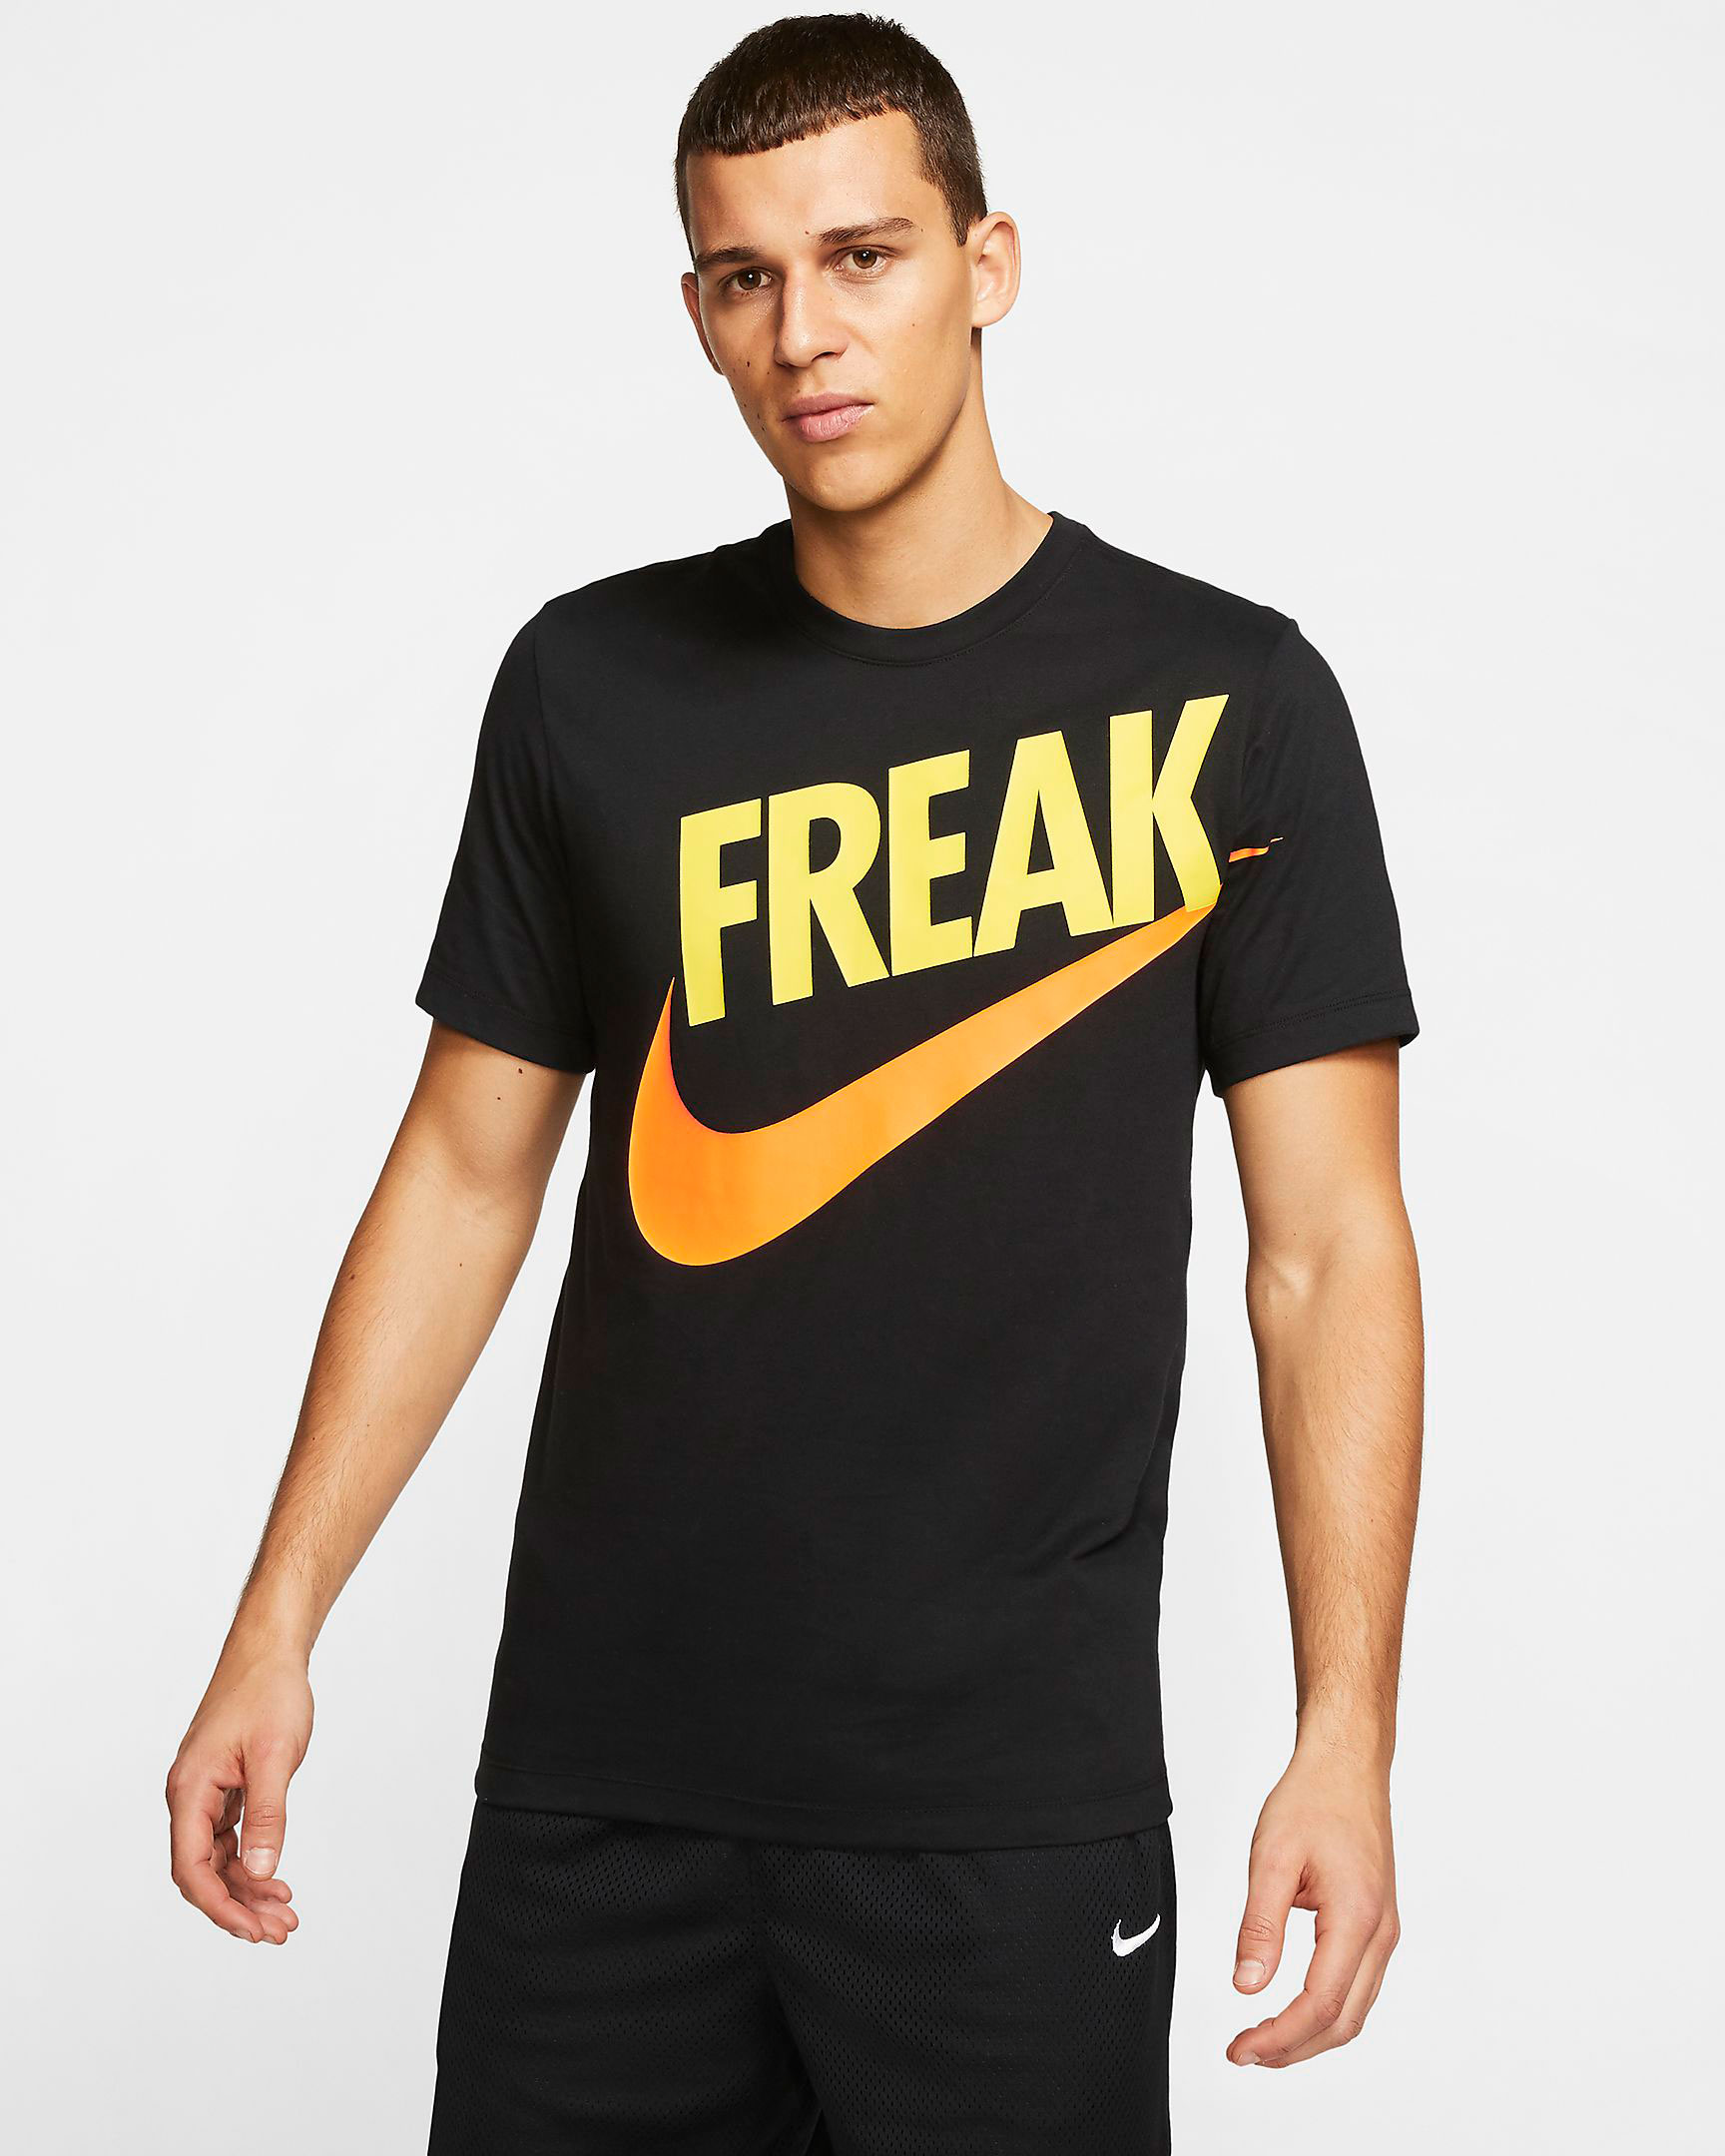 nike-giannis-freak-t-shirt-black-yellow-orange